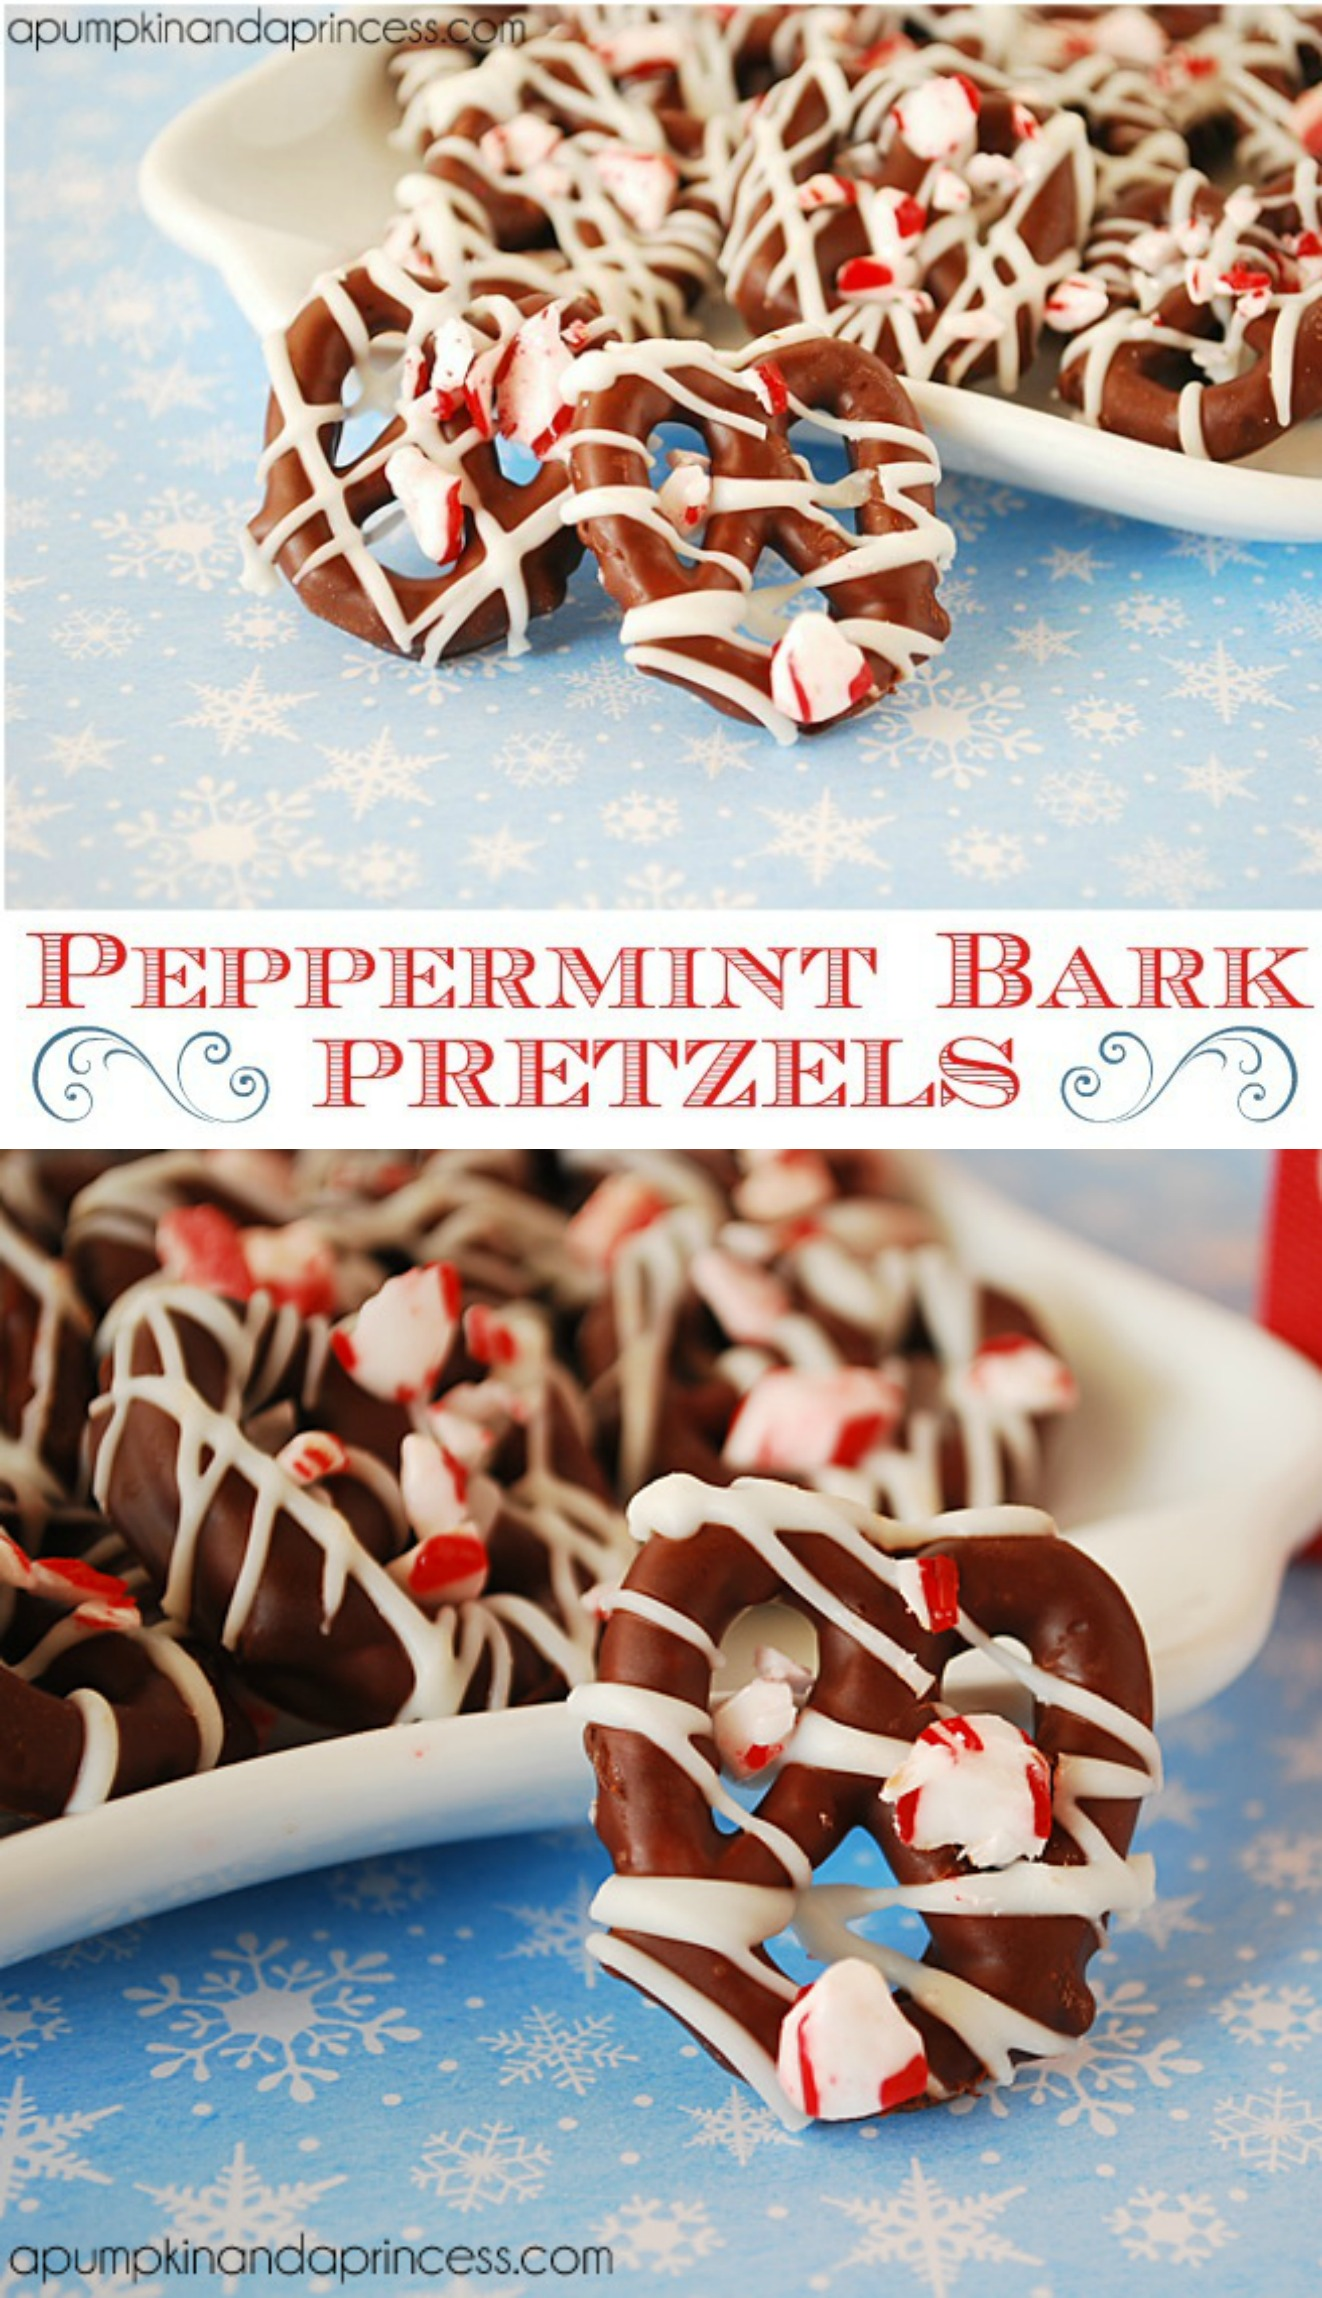 peppermint bark pretzels recipe by a pumpkin and a princess